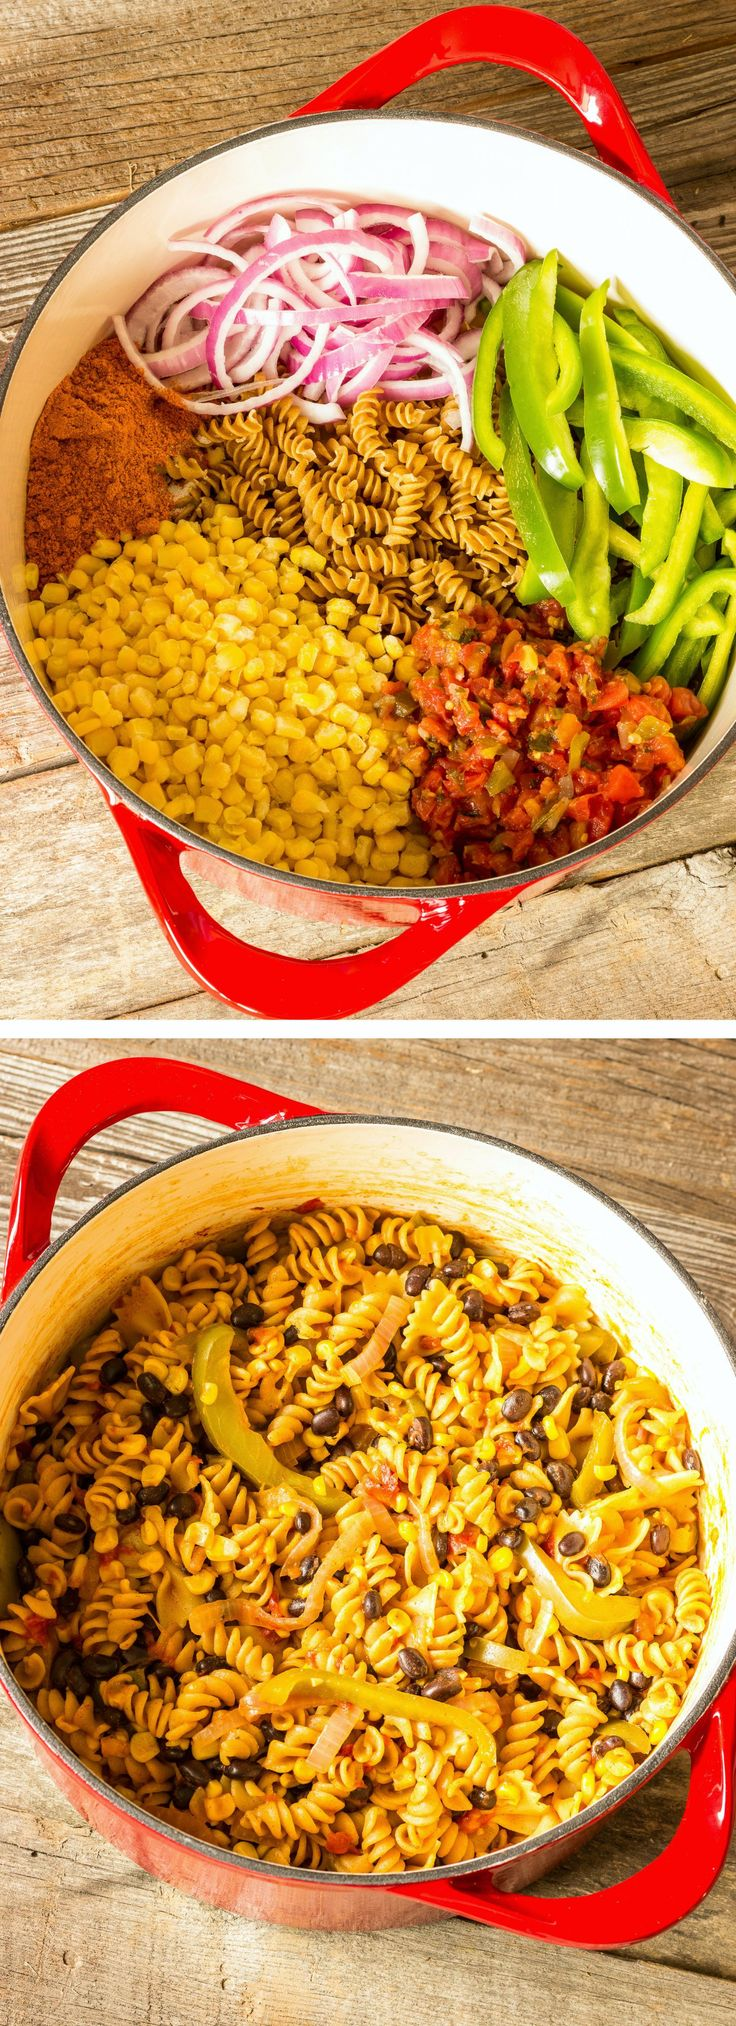 One Pot Wonder Southwest Pasta - Will be great during lent, no meat on Fridays!